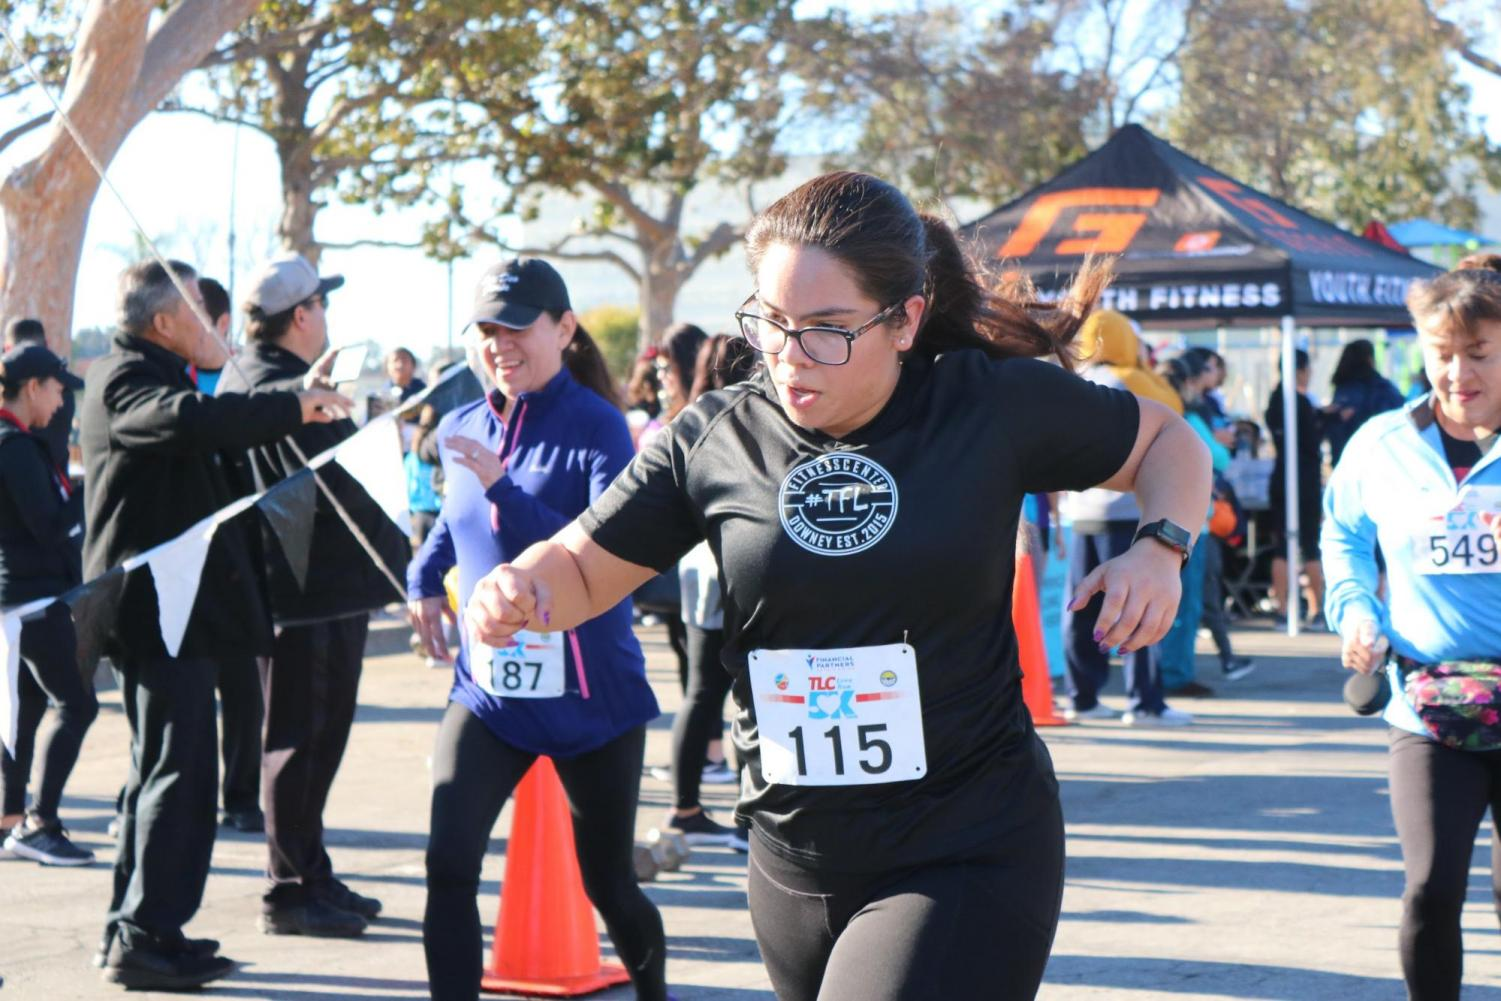 Senior+Linette+Cortes+participated+in+TLC%E2%80%99s+5K+Run+on+Feb.+23+at+Apollo+Park+for+the+purpose+of+wanting+to+help+the+organization+raise+money.+%E2%80%9CThe+Downey+community+came+together+as+a+whole%2C%E2%80%9D+Cortes+said.+%E2%80%9CEveryone+helped+raise+money+to+help+promote+a+better+and+healthier+life+for+everyone.%E2%80%9D